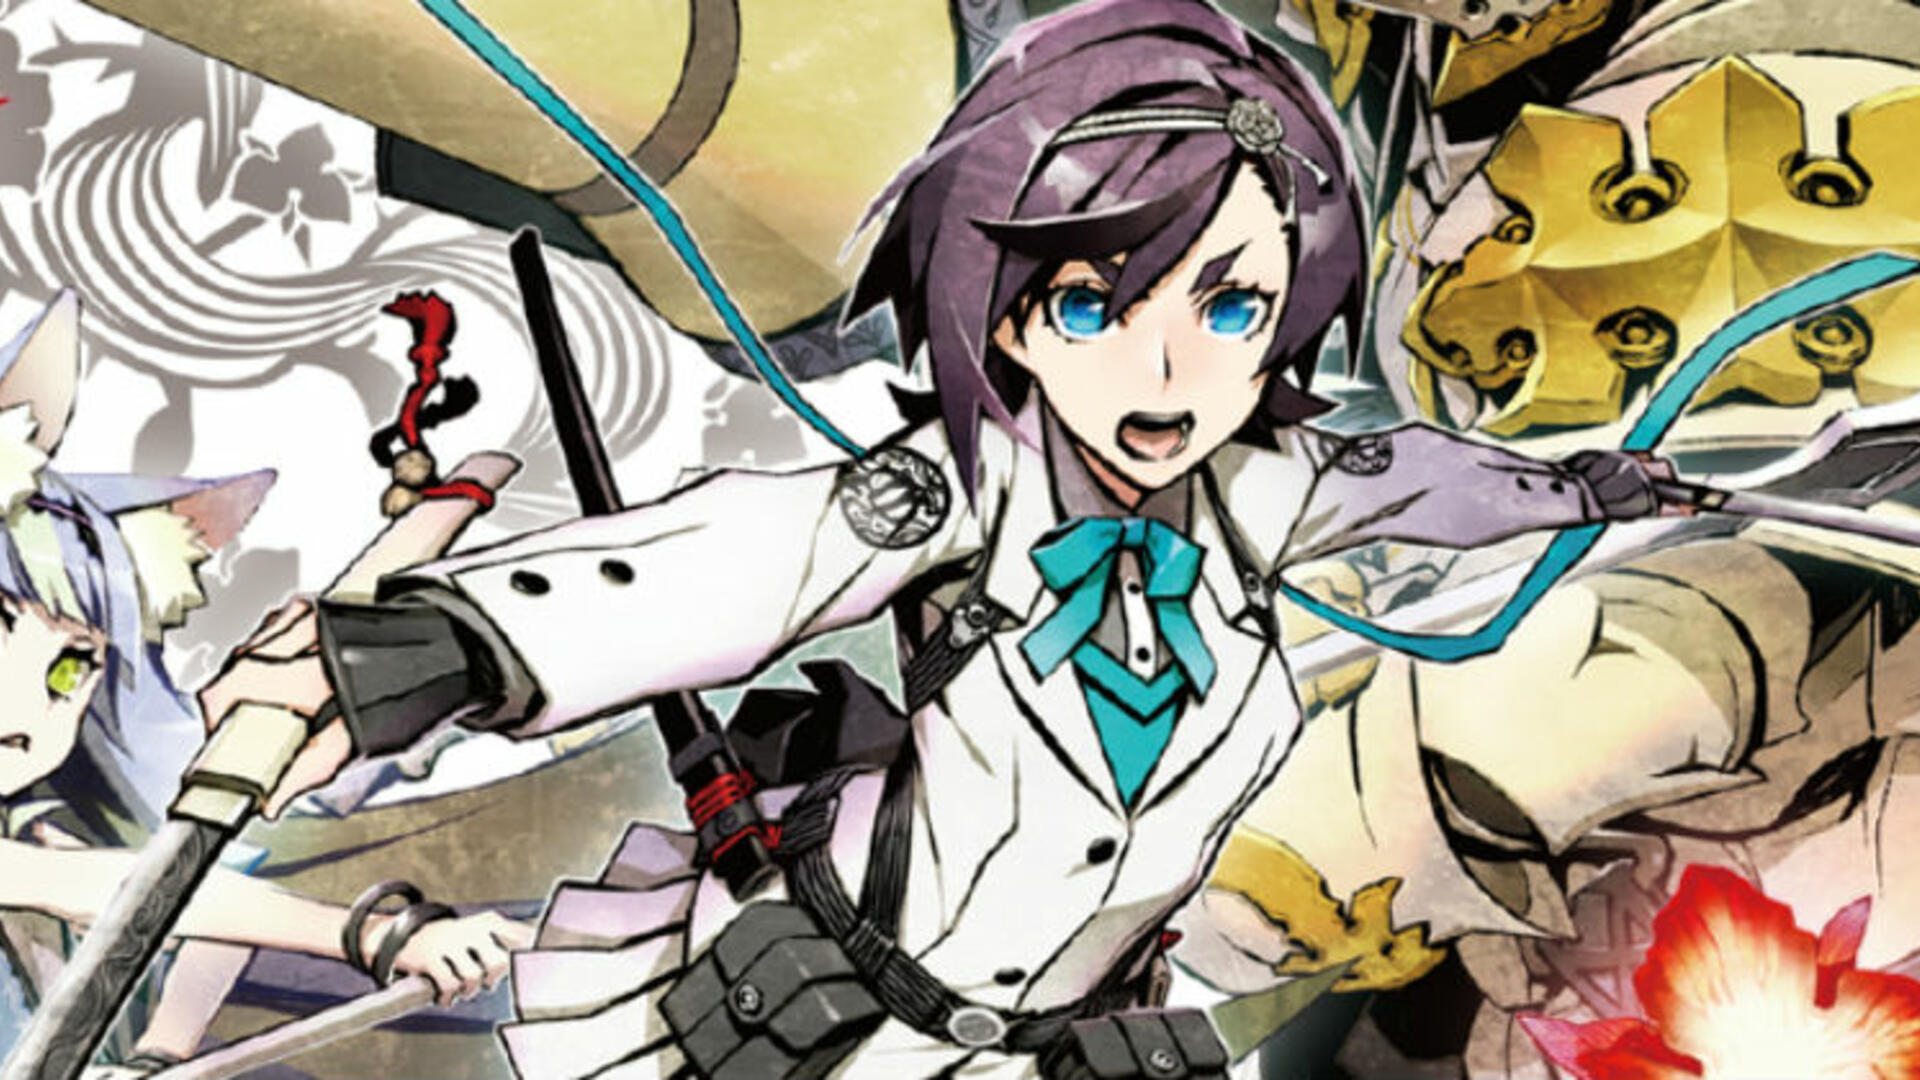 7th Dragon III 3DS Review: Fashionably Late